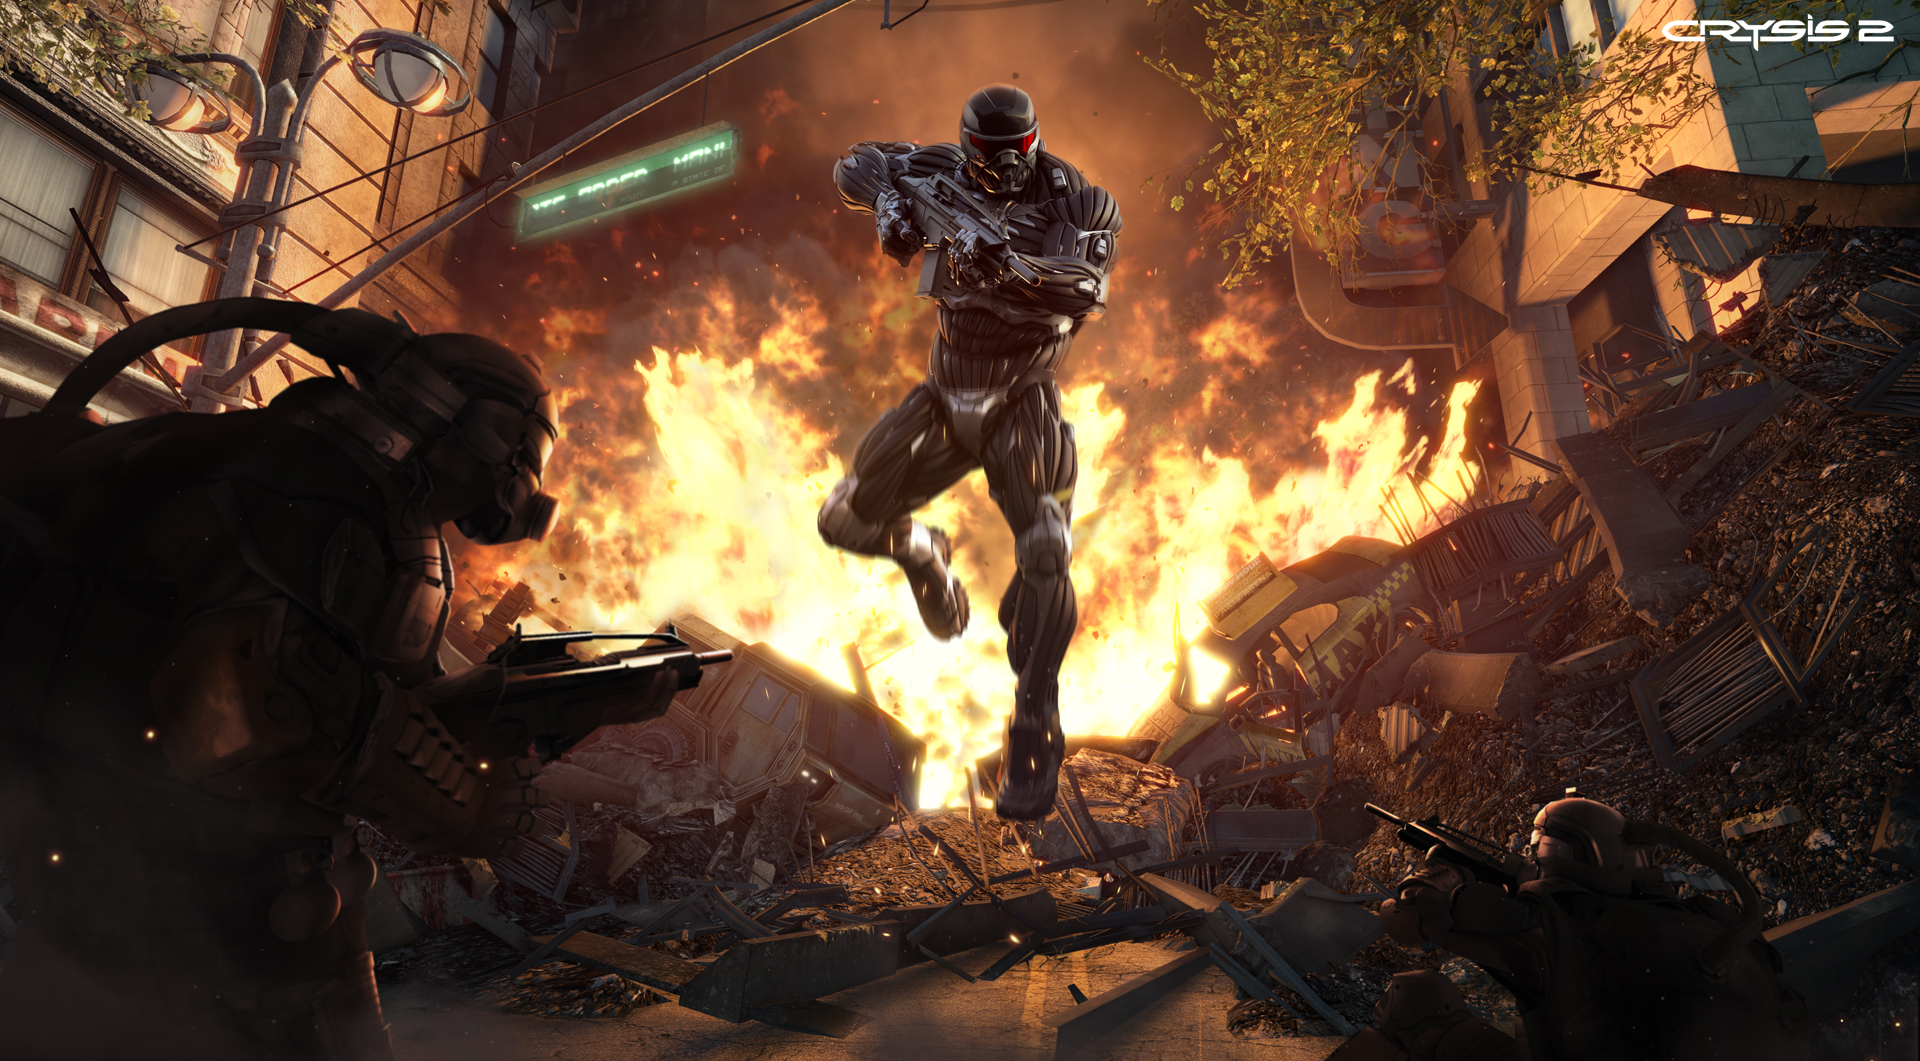 crysis 2 images crysis 2 hd wallpaper and background